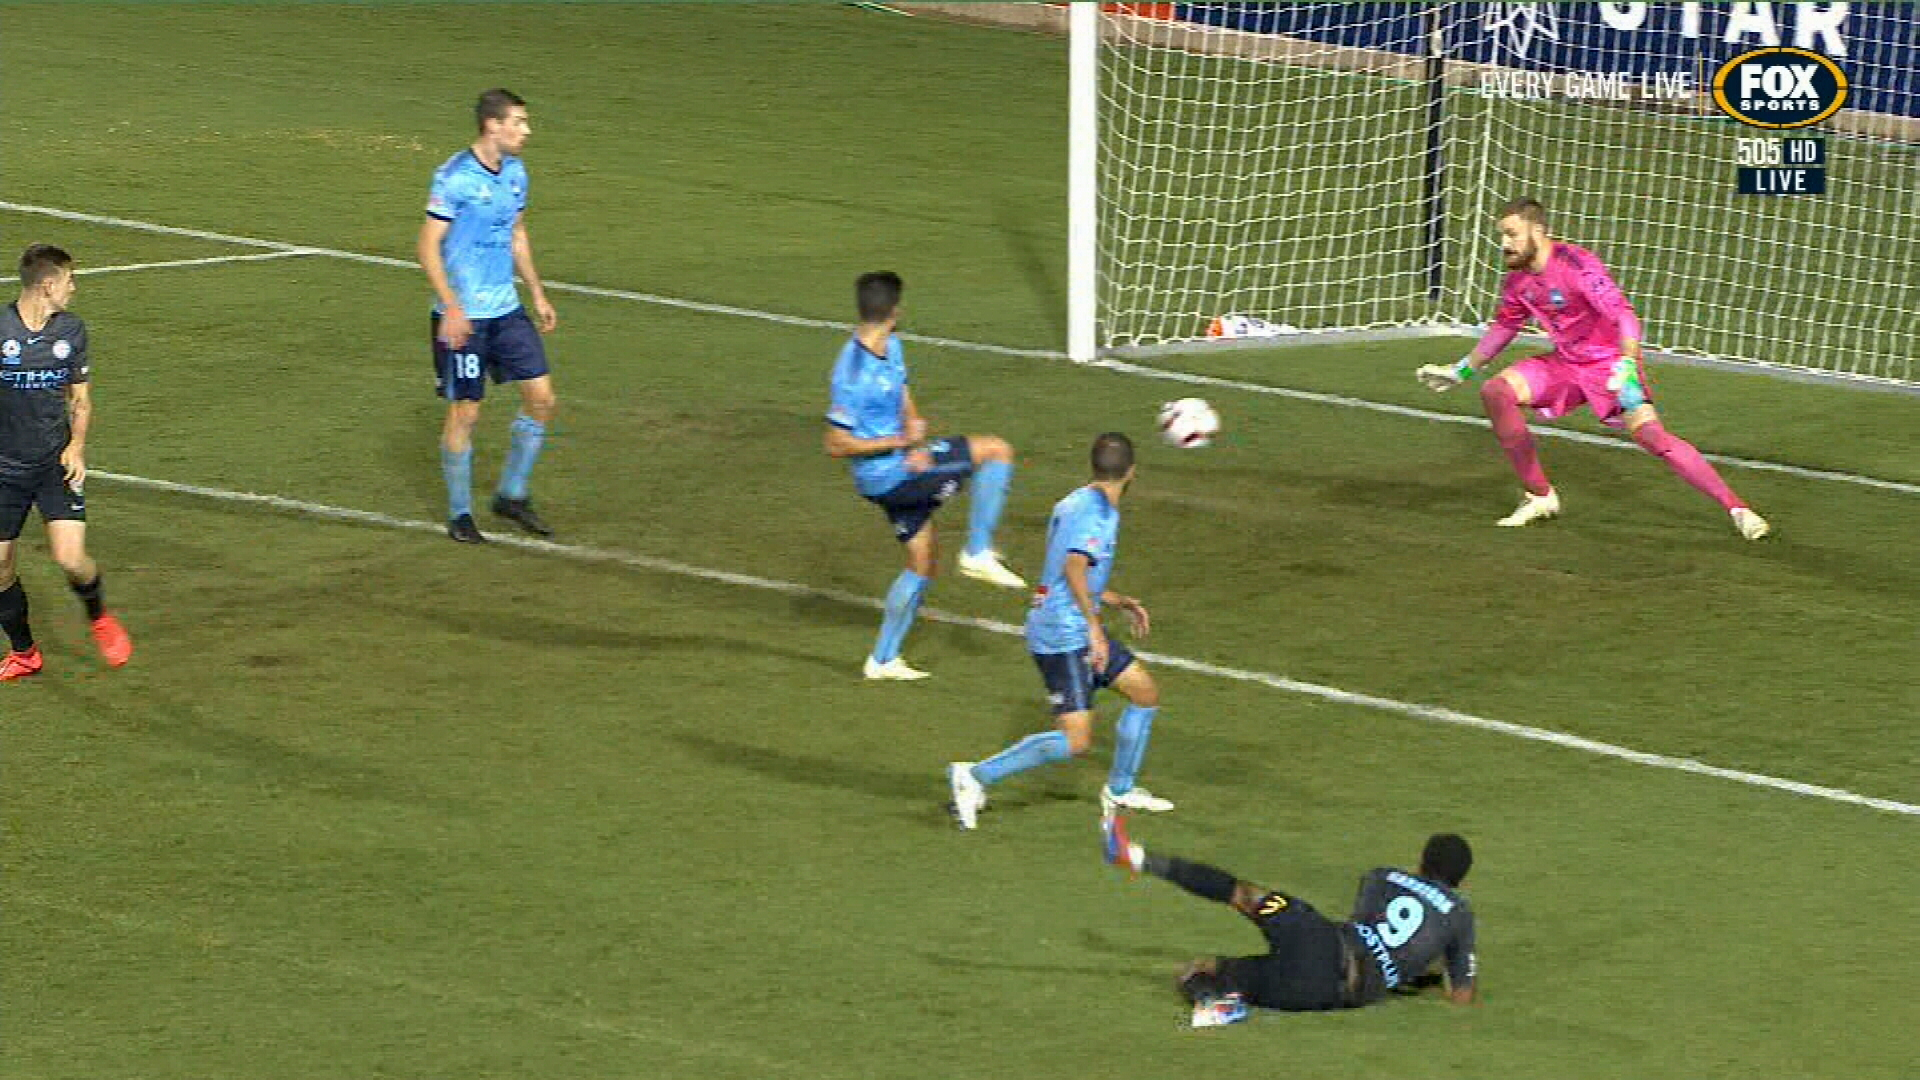 Melbourne City down Sydney FC